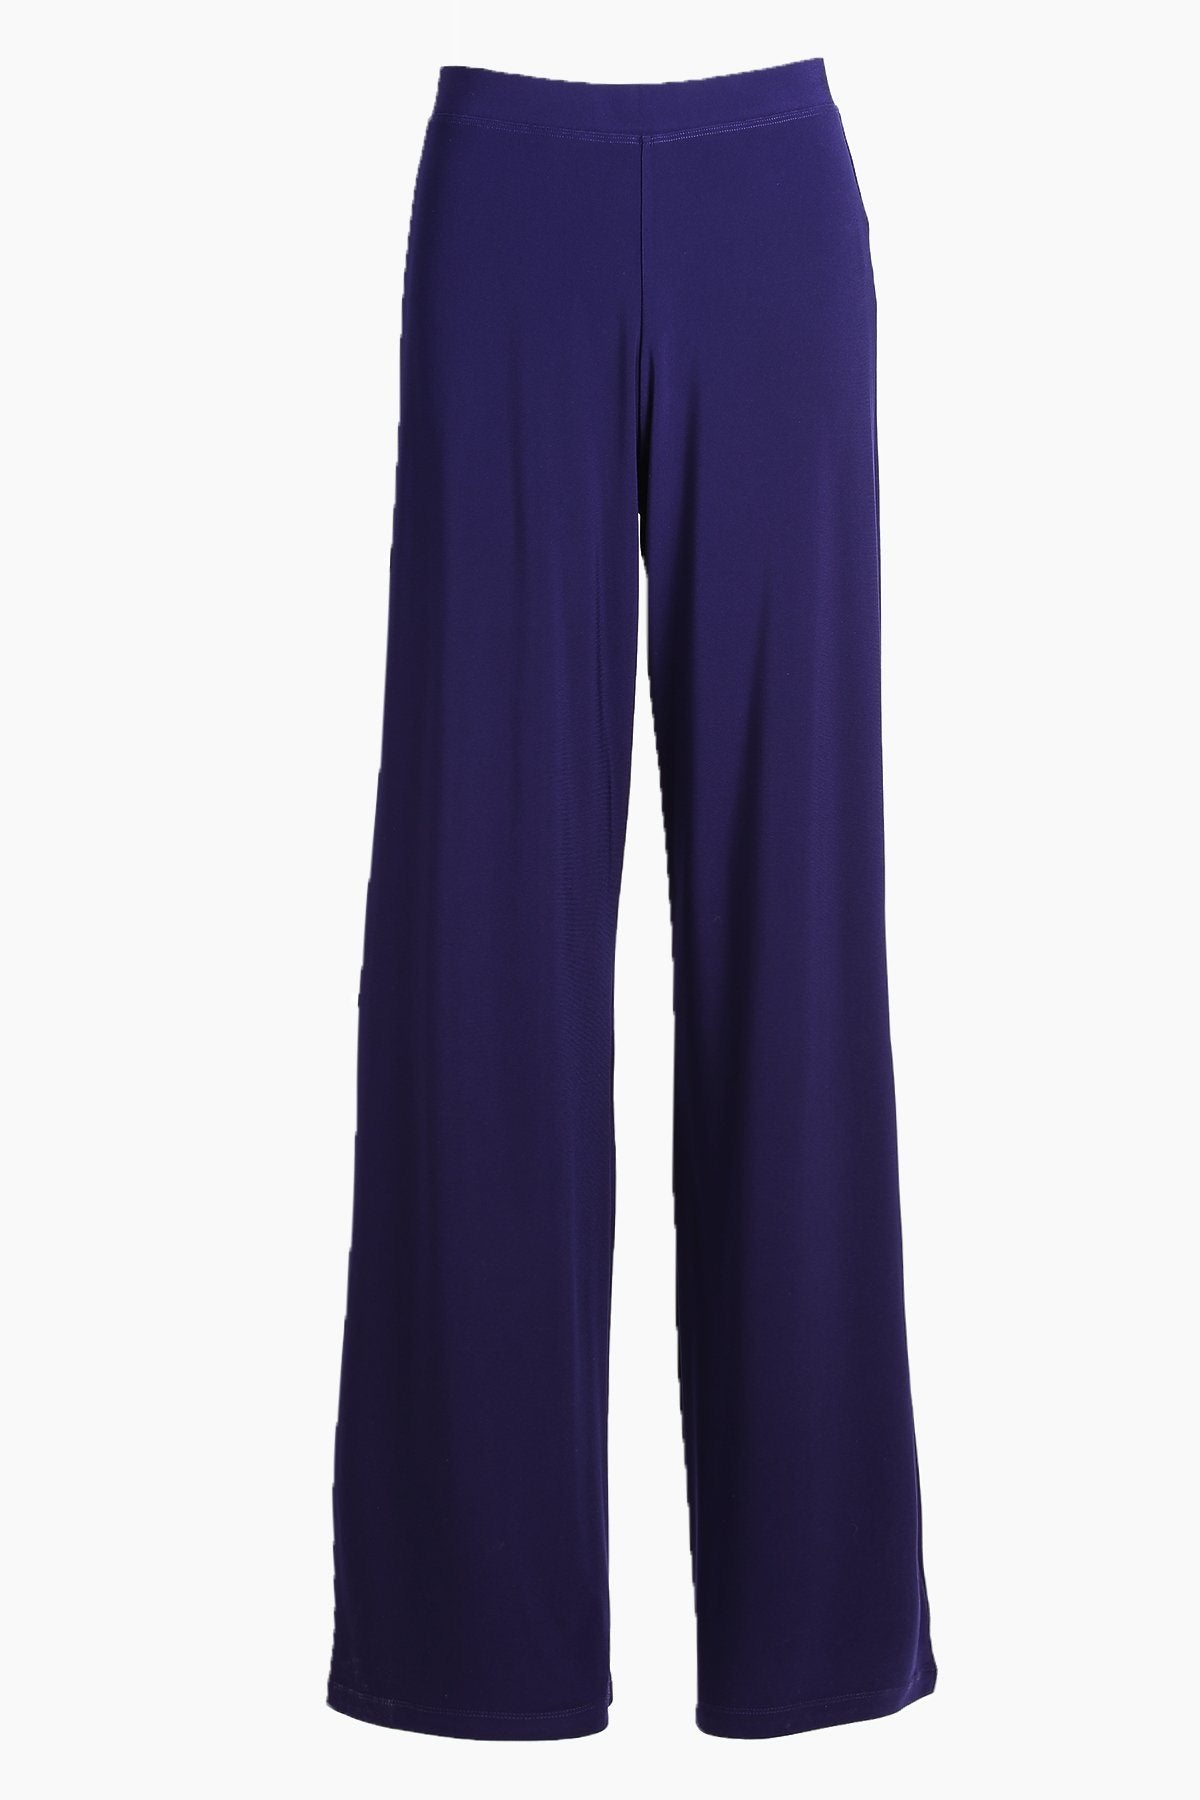 Women's Navy Wide Leg Pants Rosarini